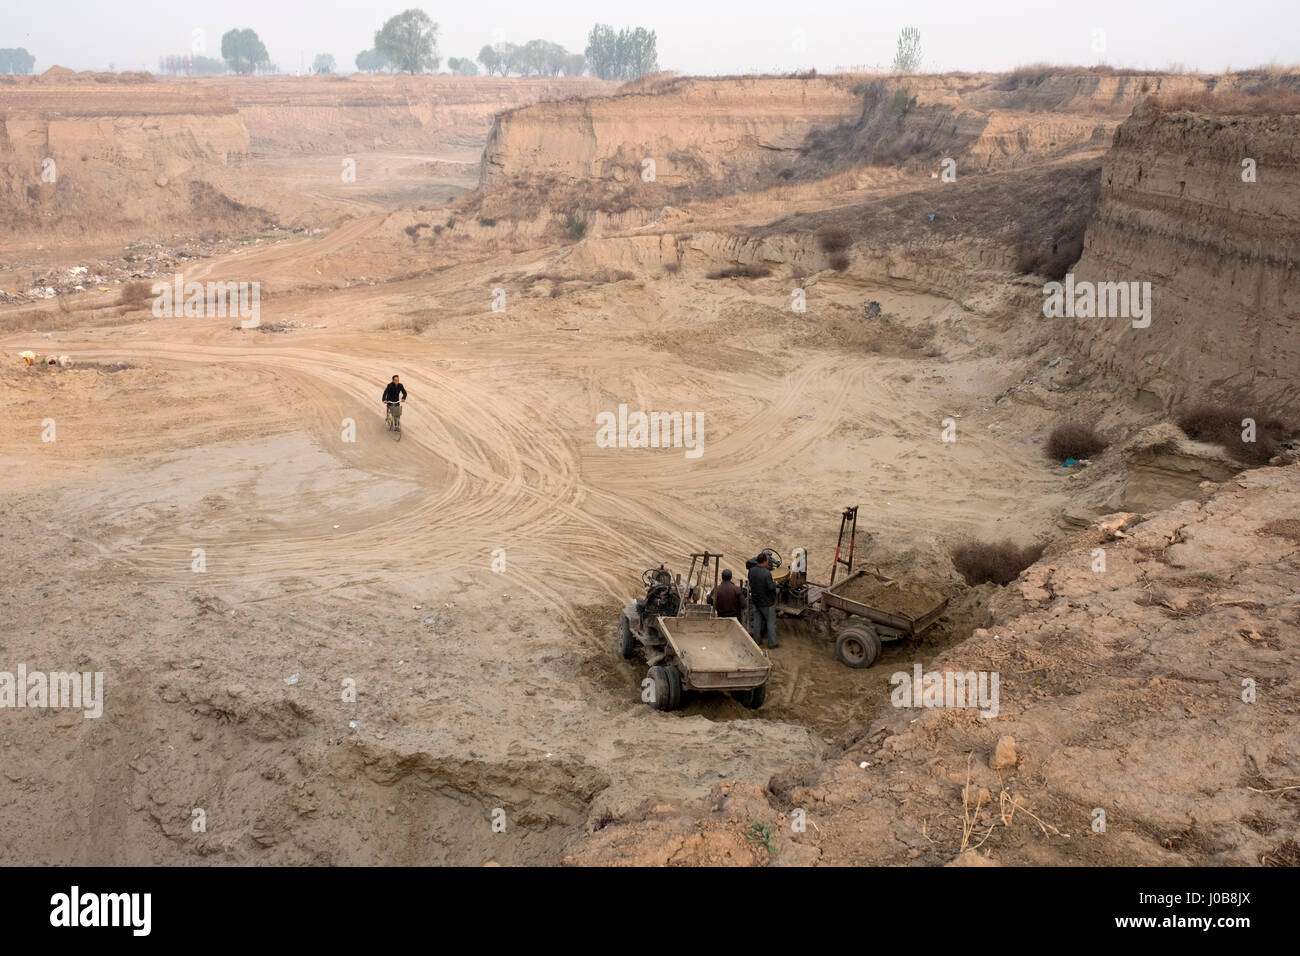 Men dredge earth or sand in a huge pit in Xiong County, Hebei province, China. 09-Apr-2017 - Stock Image